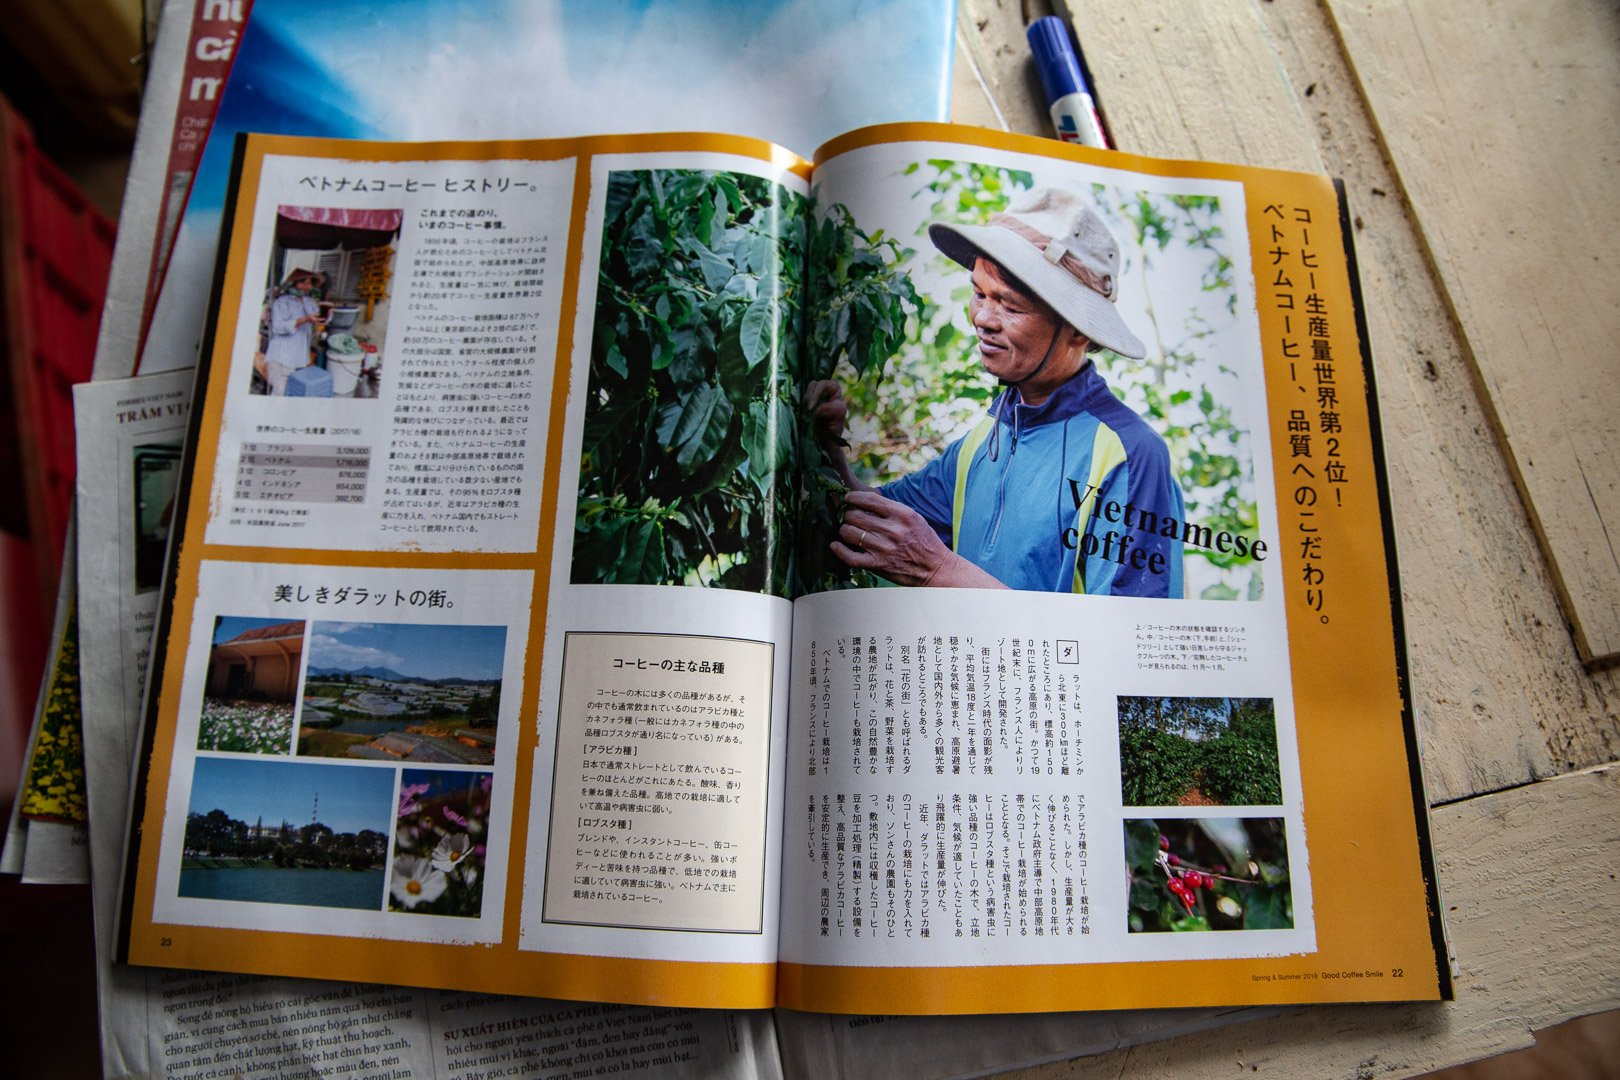 An open magazine displays photos of the dalat coffee farm